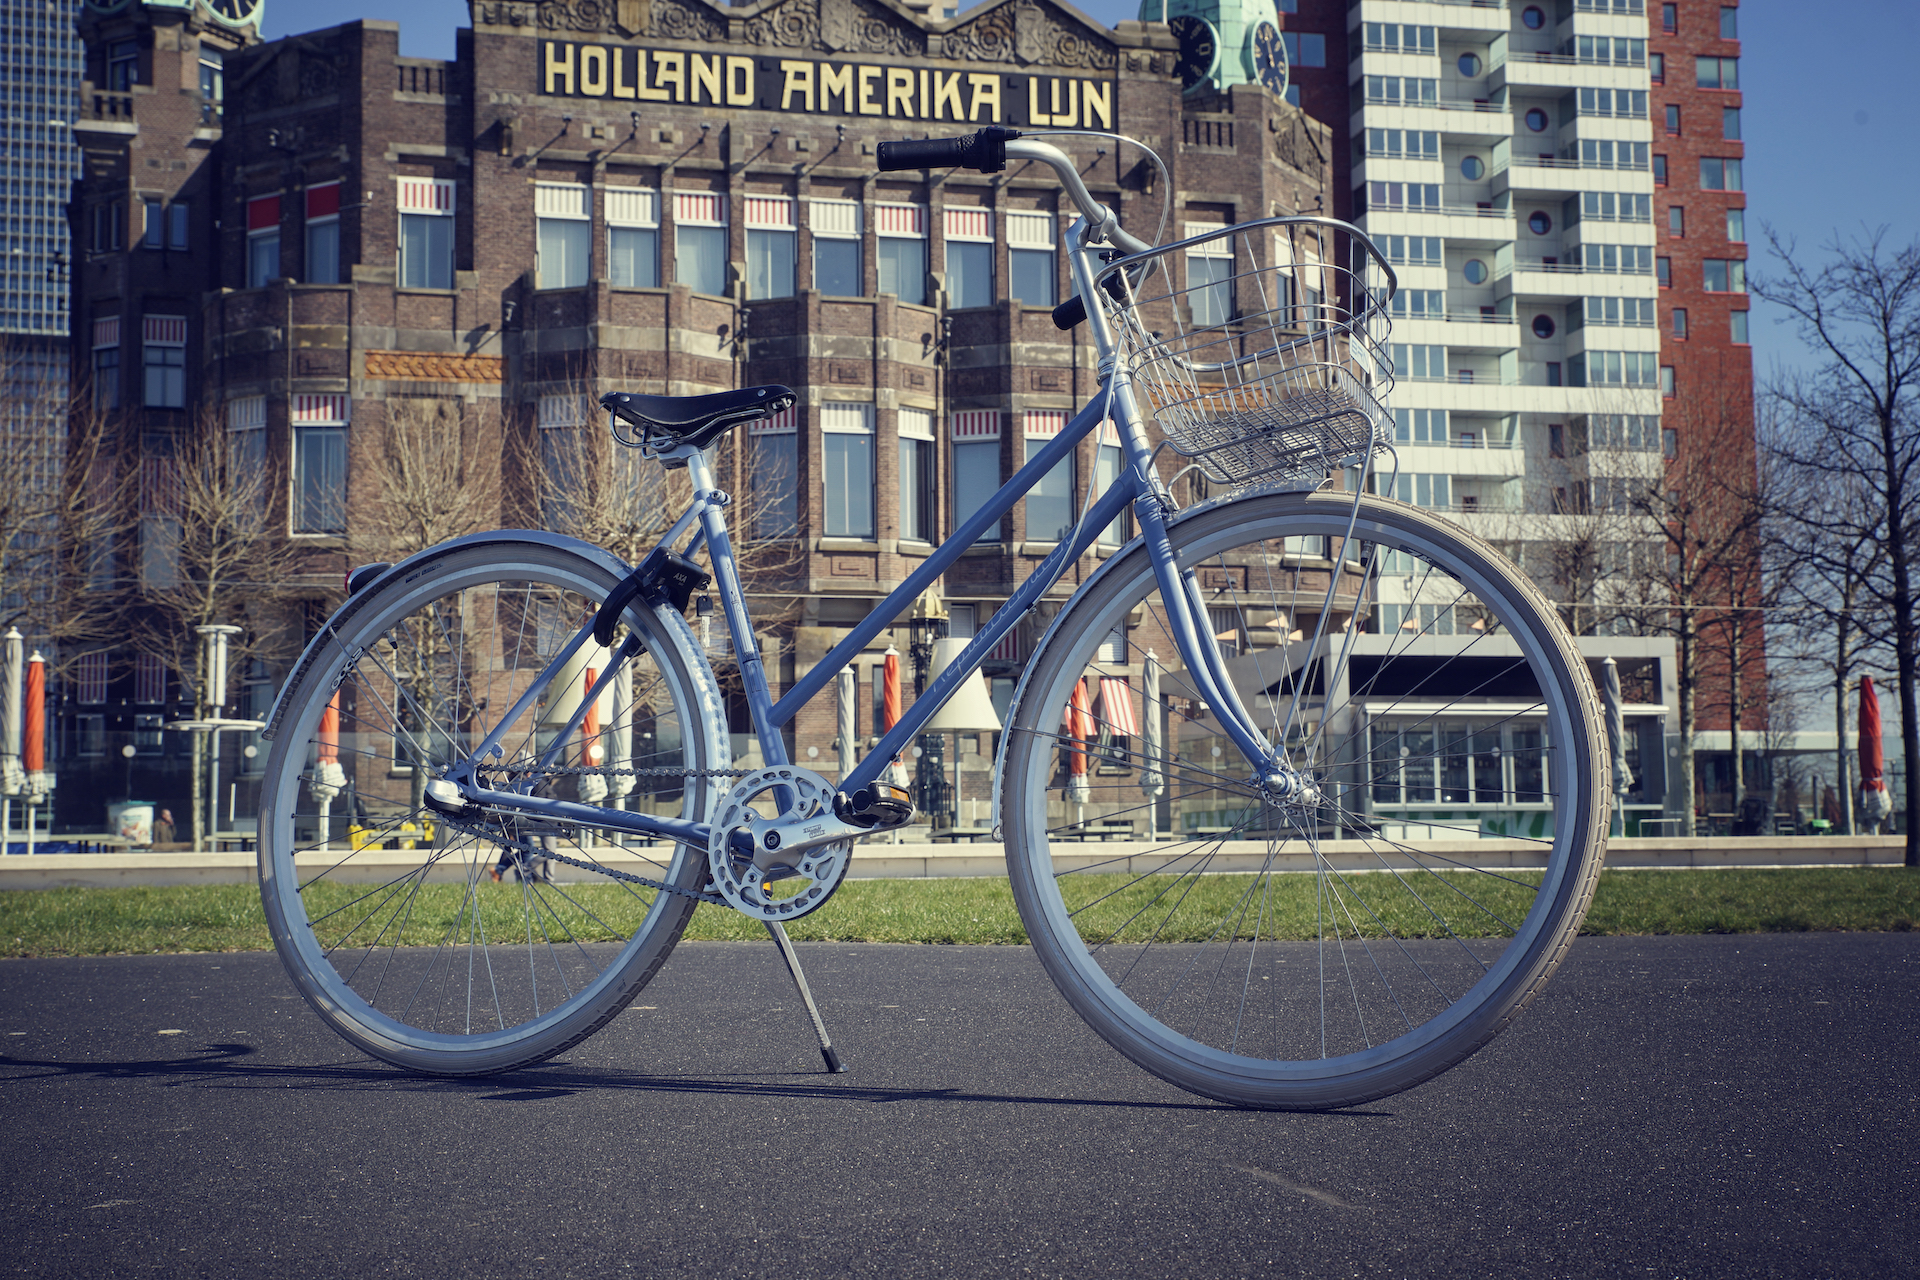 Lady bicycle in Rotterdam | build in the Netherlands | Holland Amerika Lijn